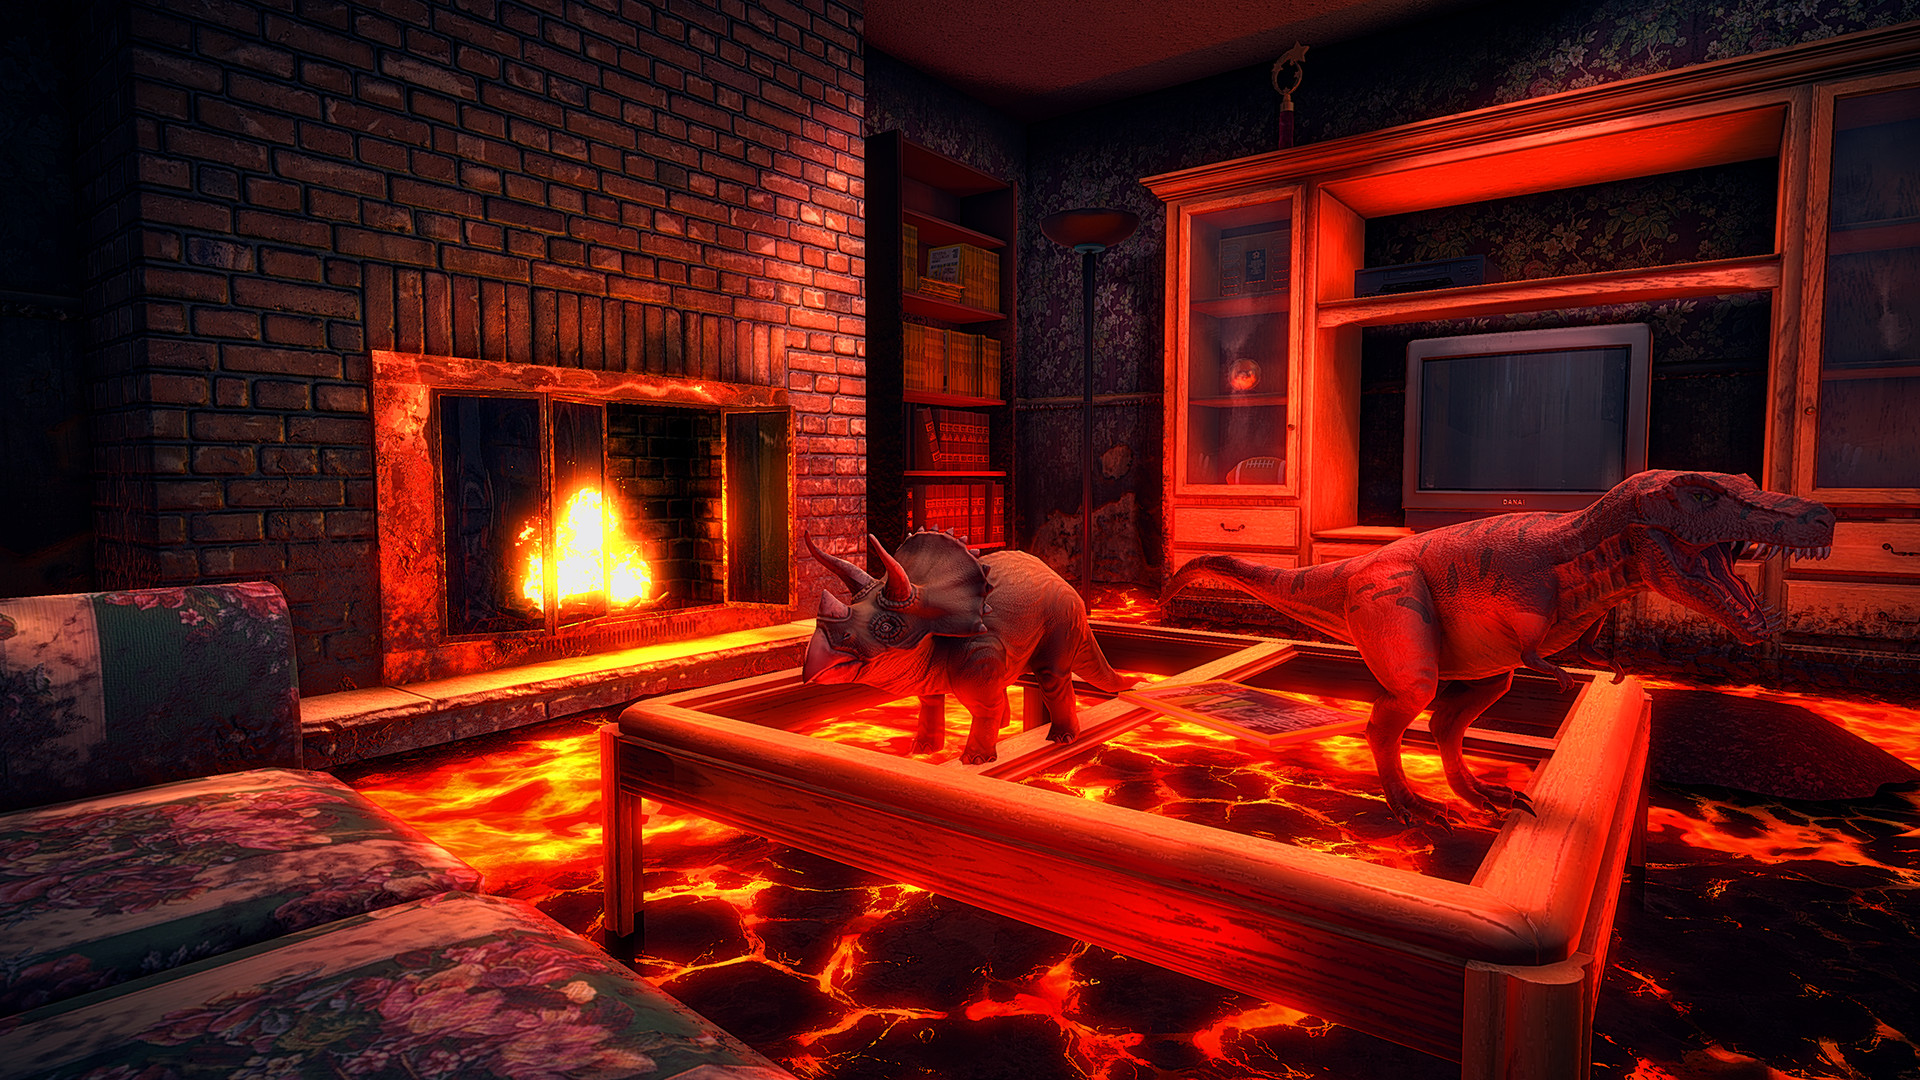 The Floor Is Lava Is Now A Videogame, And It Looks Awesome ss b93f5638d9d3cd63959782c7152d1e2864bb045a.1920x1080